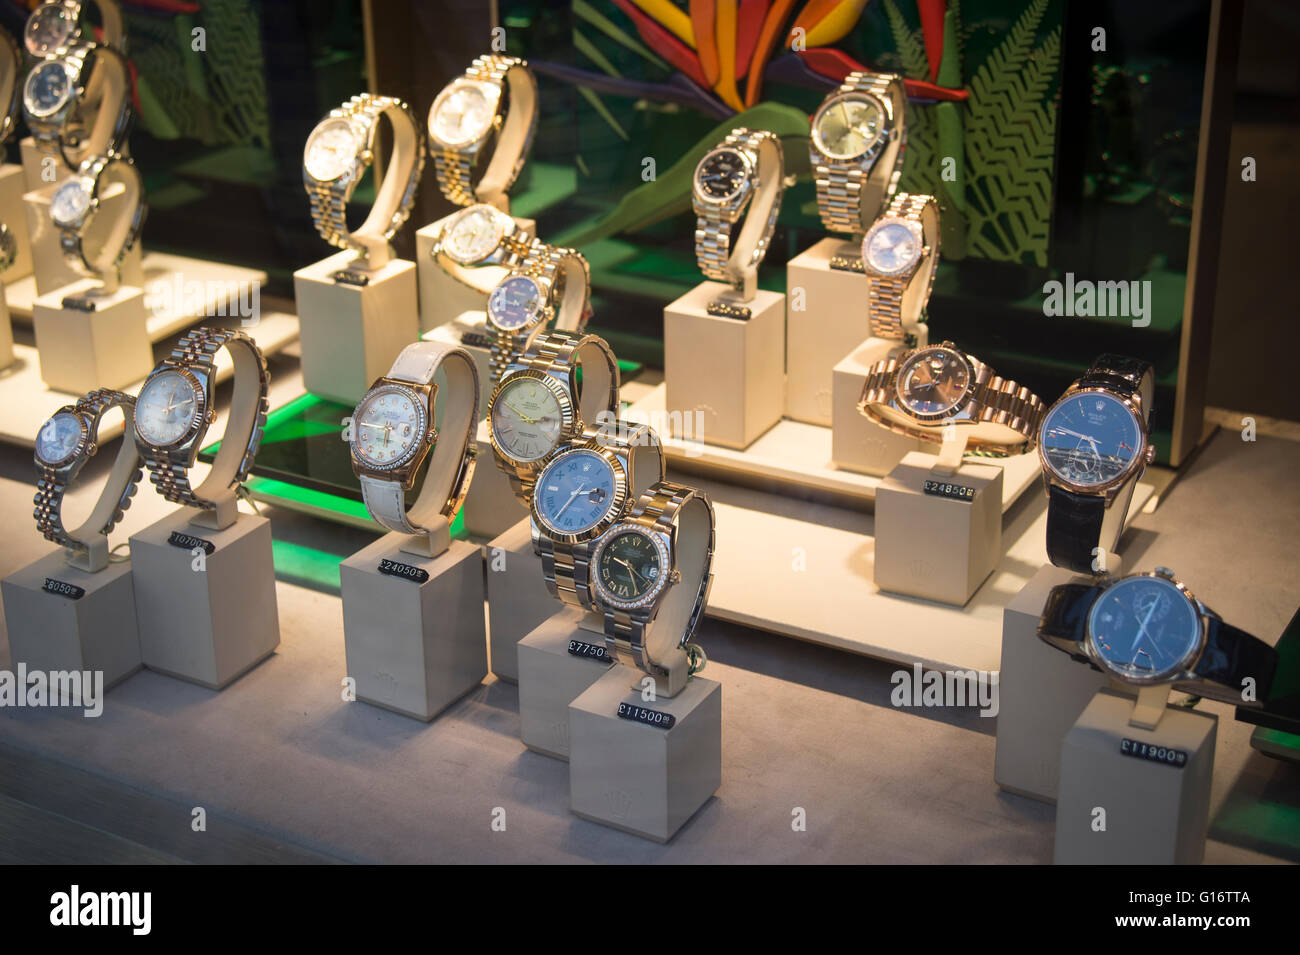 Rolex watches on display in a jewelers window - Stock Image